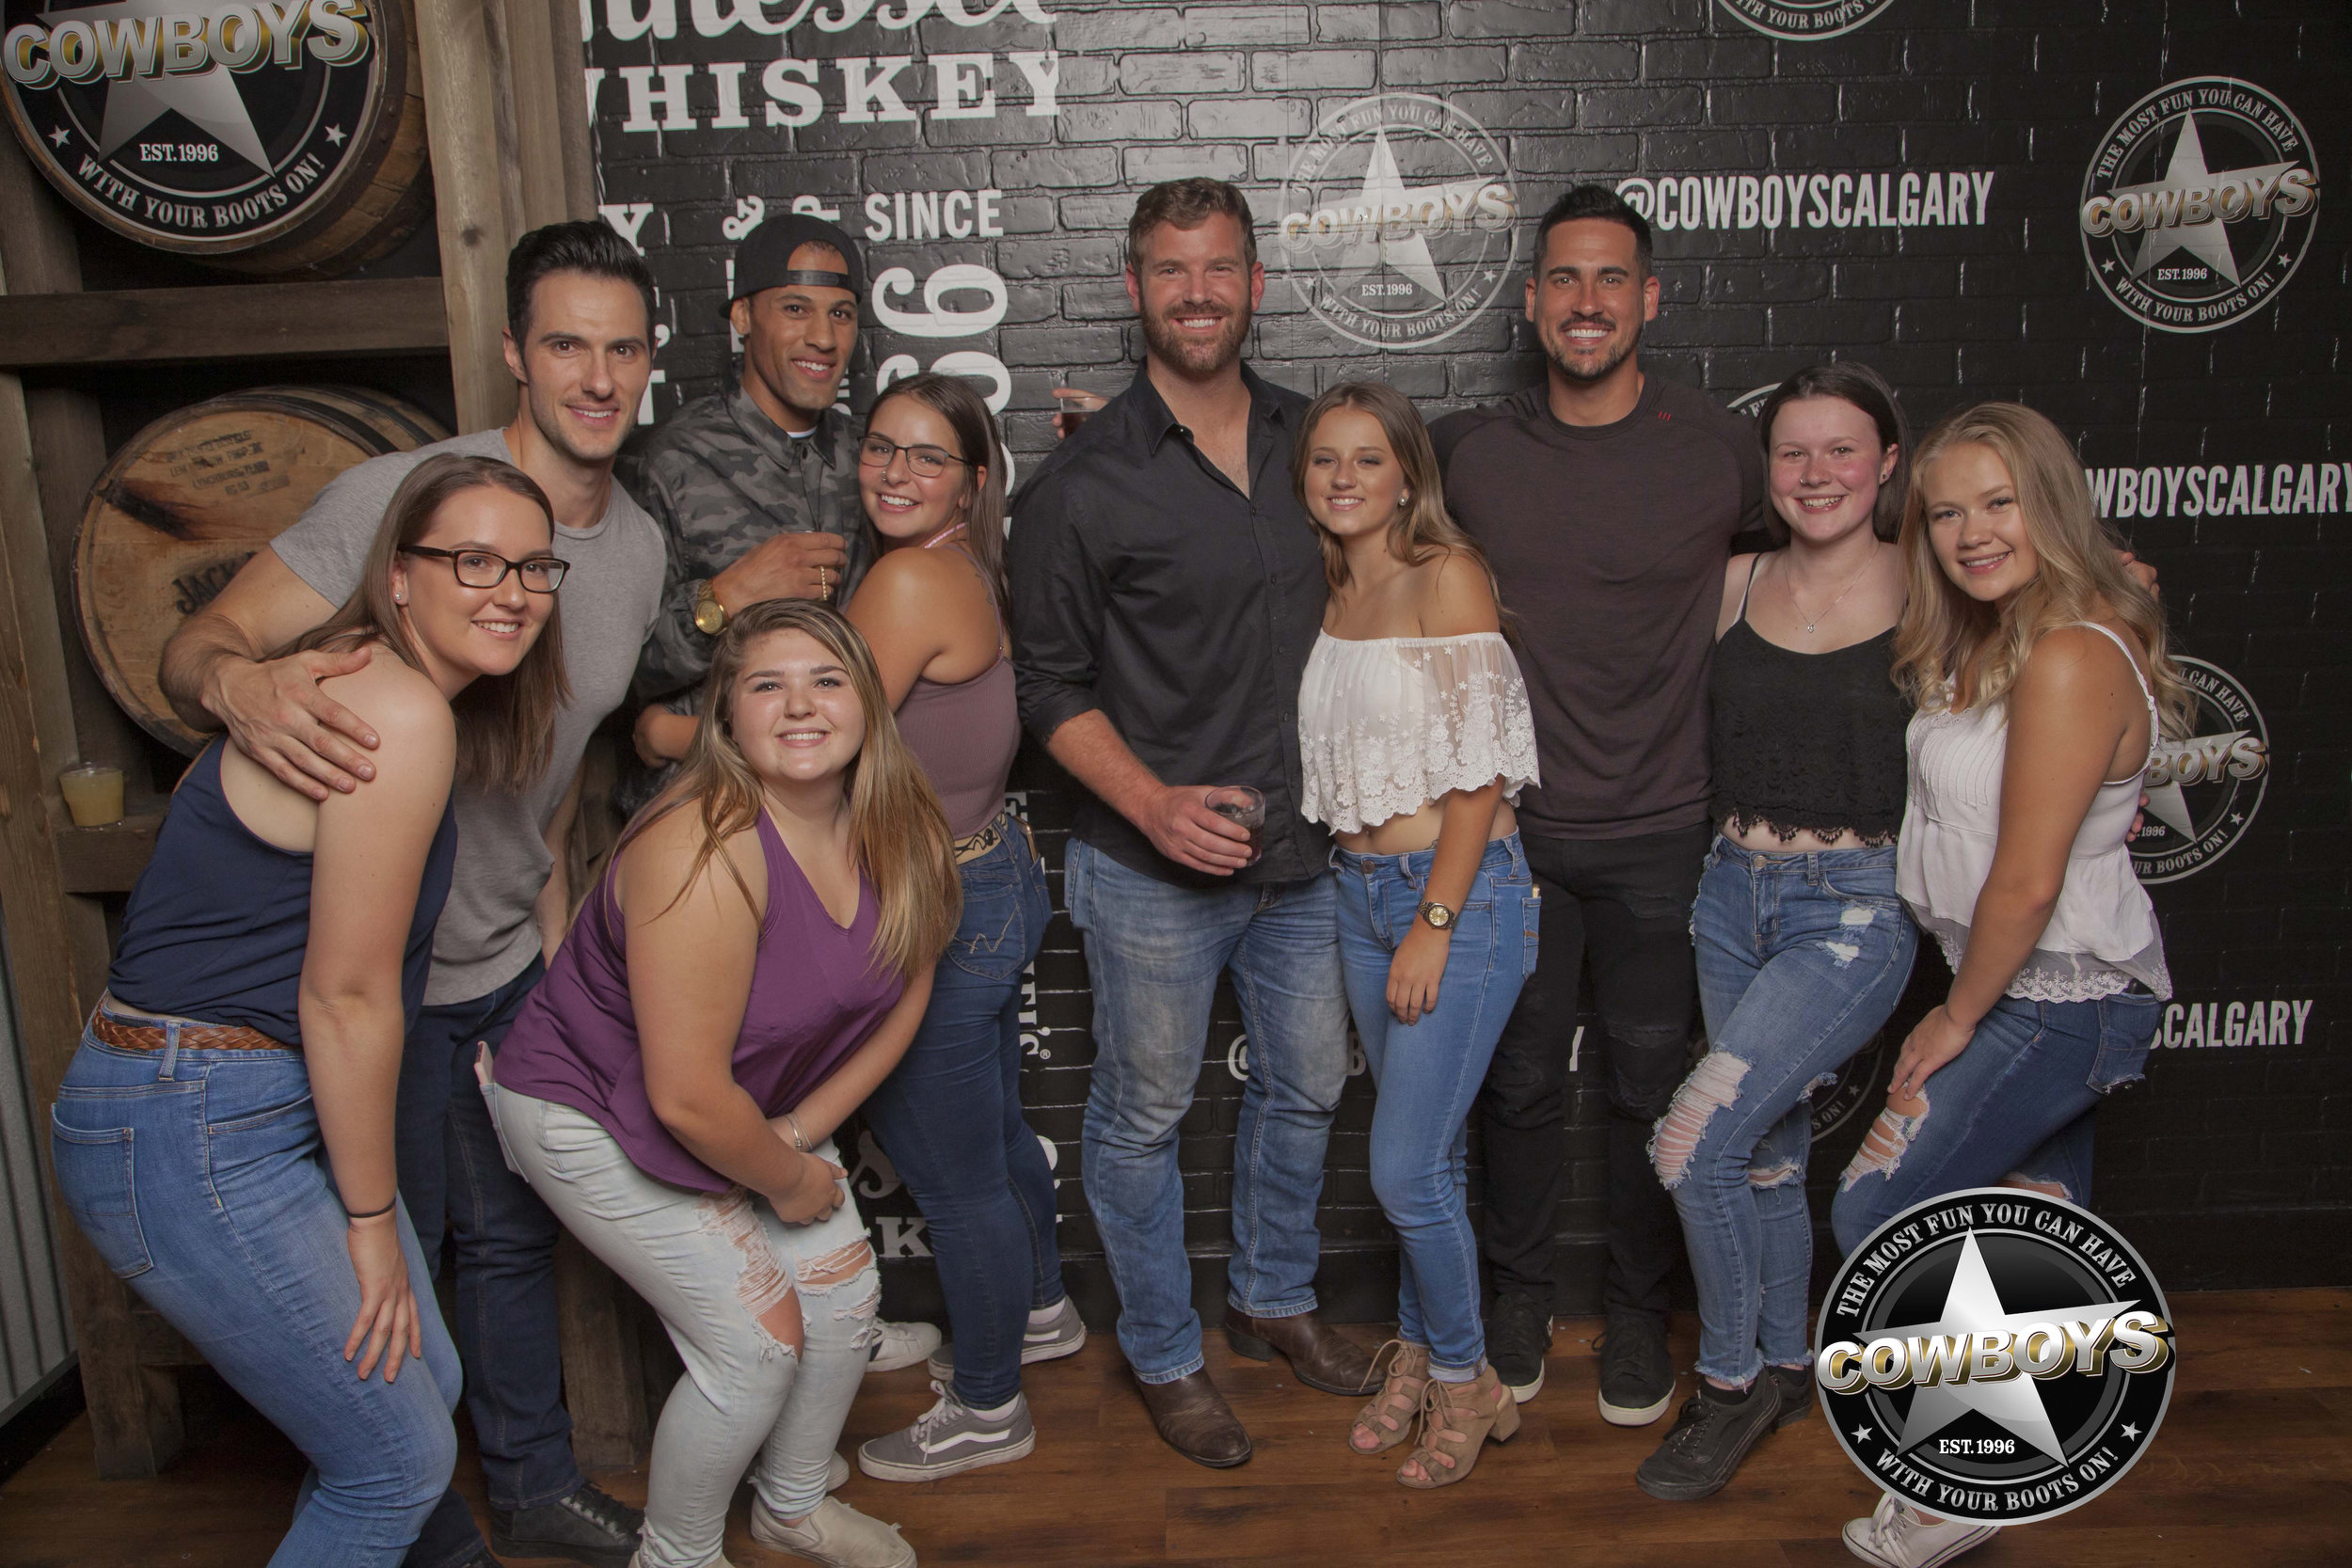 BACHELOR AUGUST 2018 by JORDAN GOODEN_19.jpg